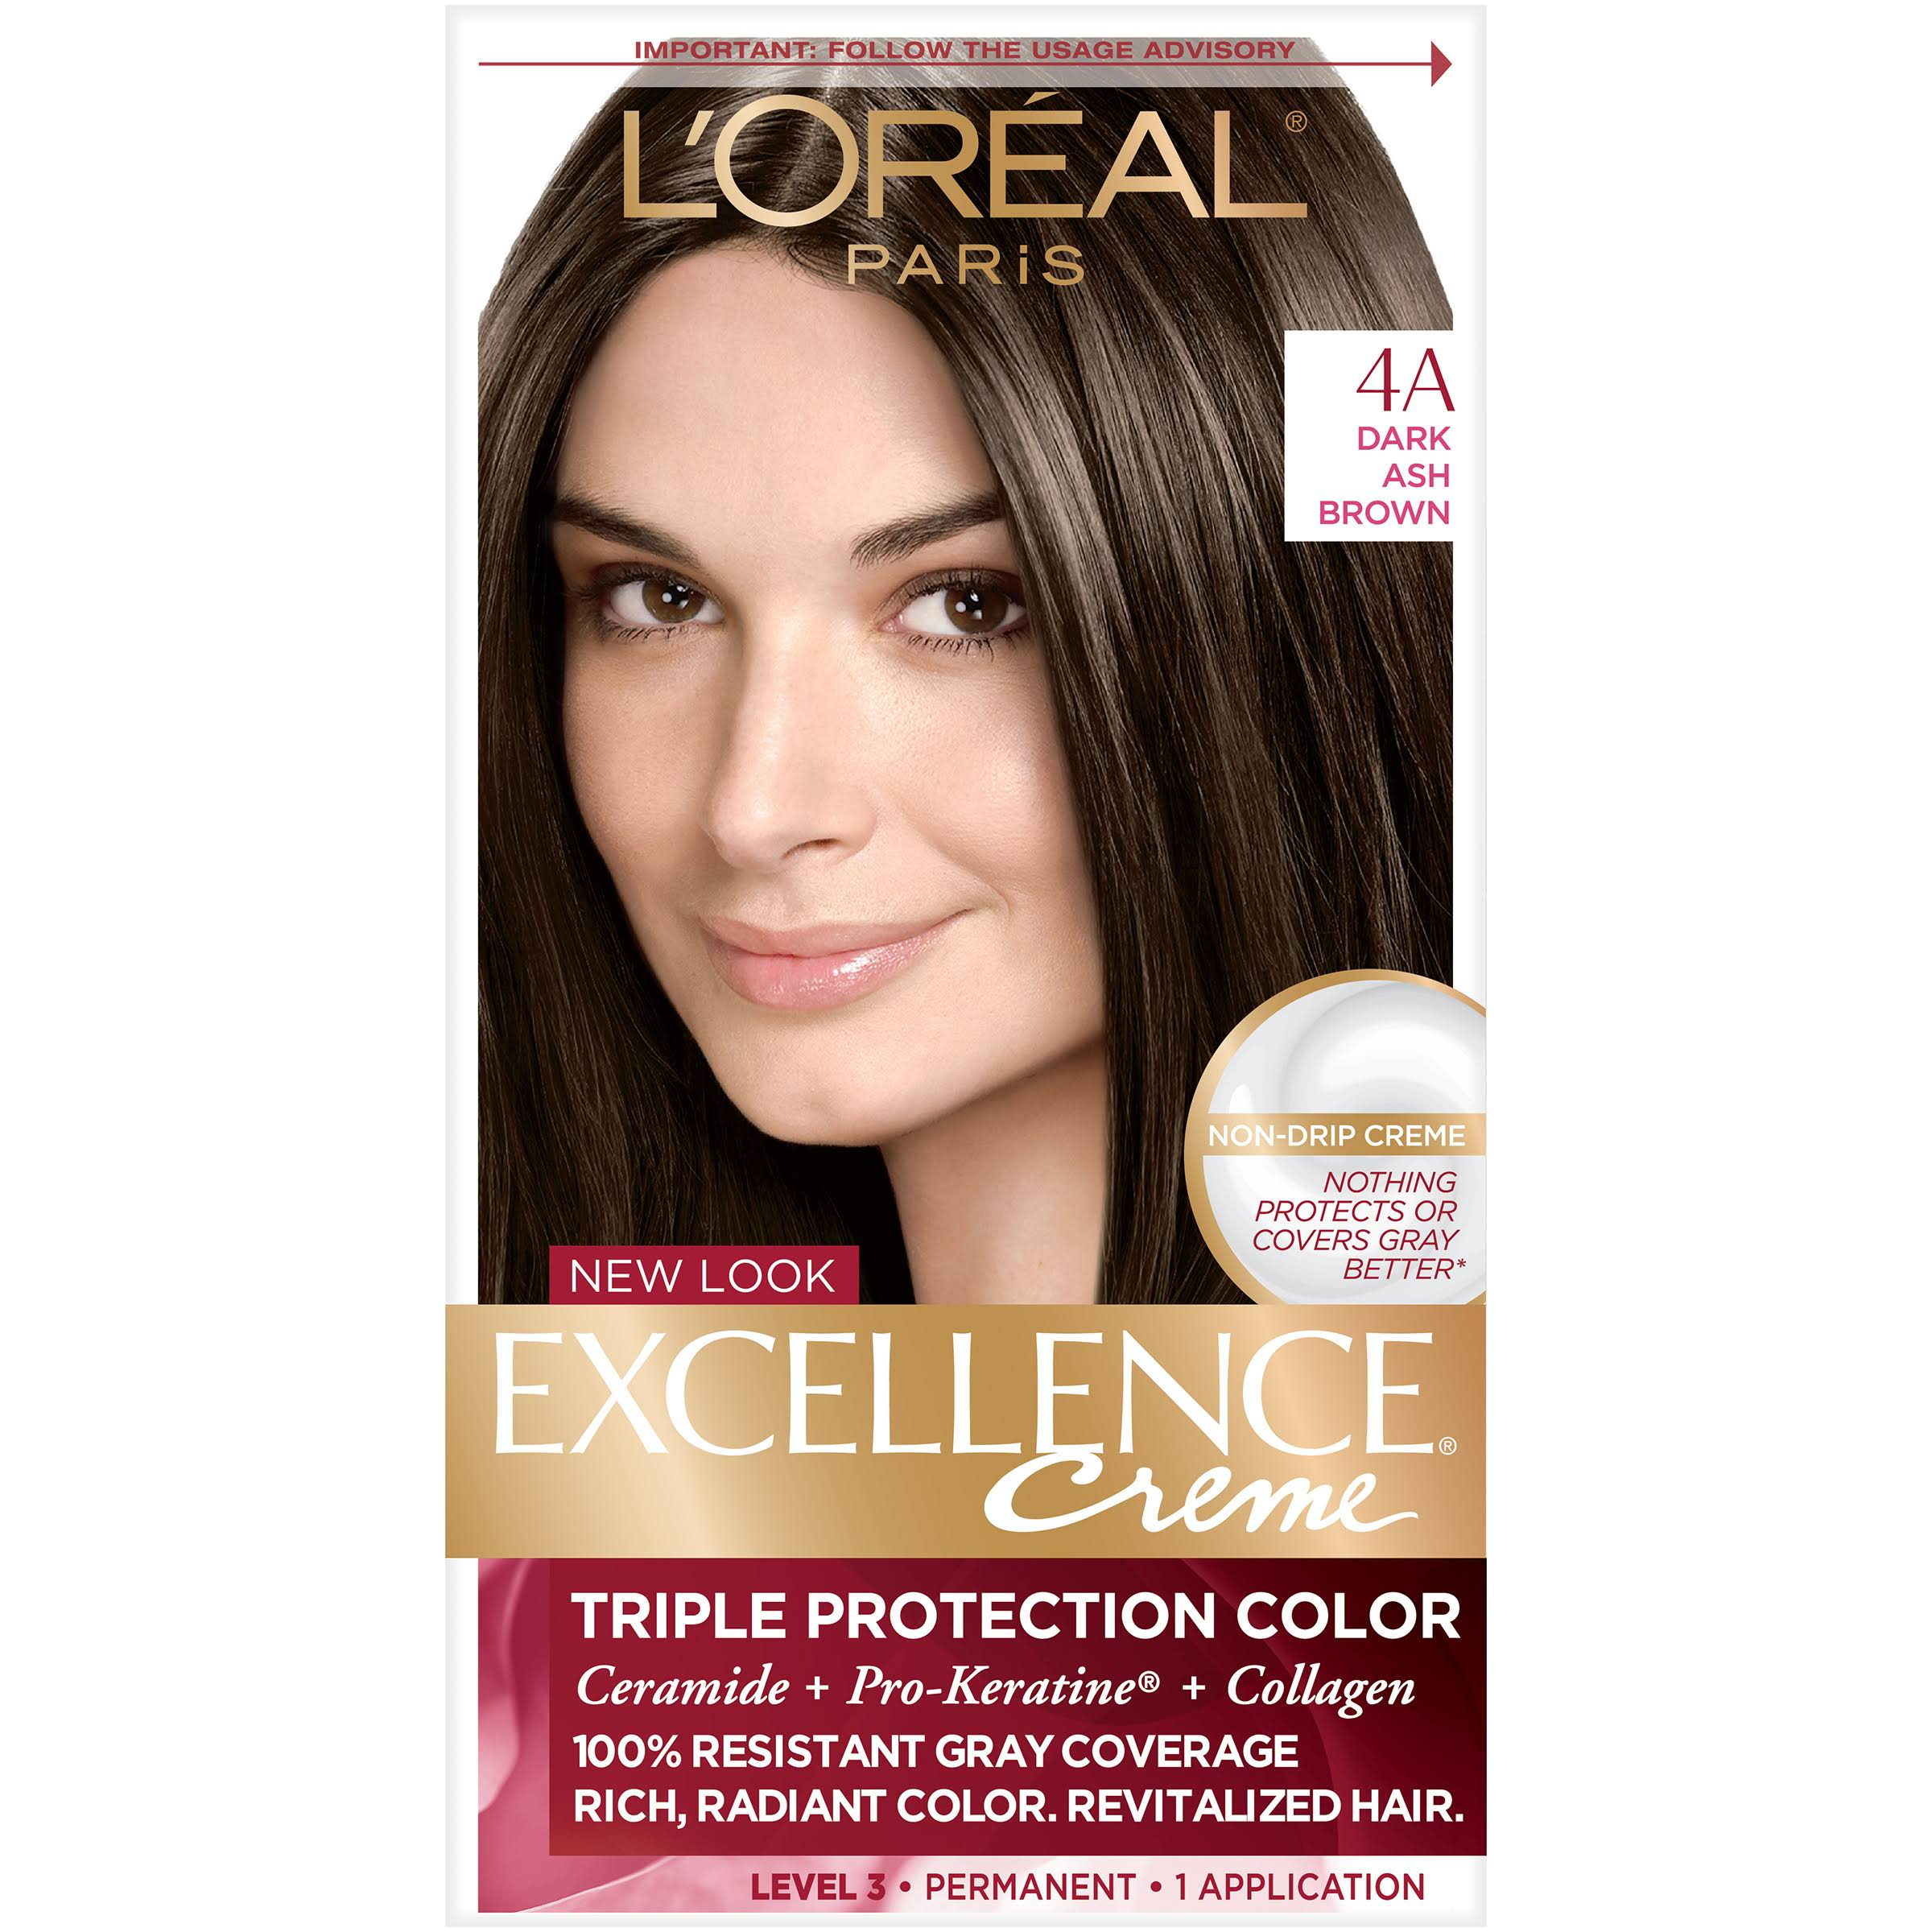 L'Oréal Paris Excellence Créme Permanent Hair Color - 4A Dark Ash Brown